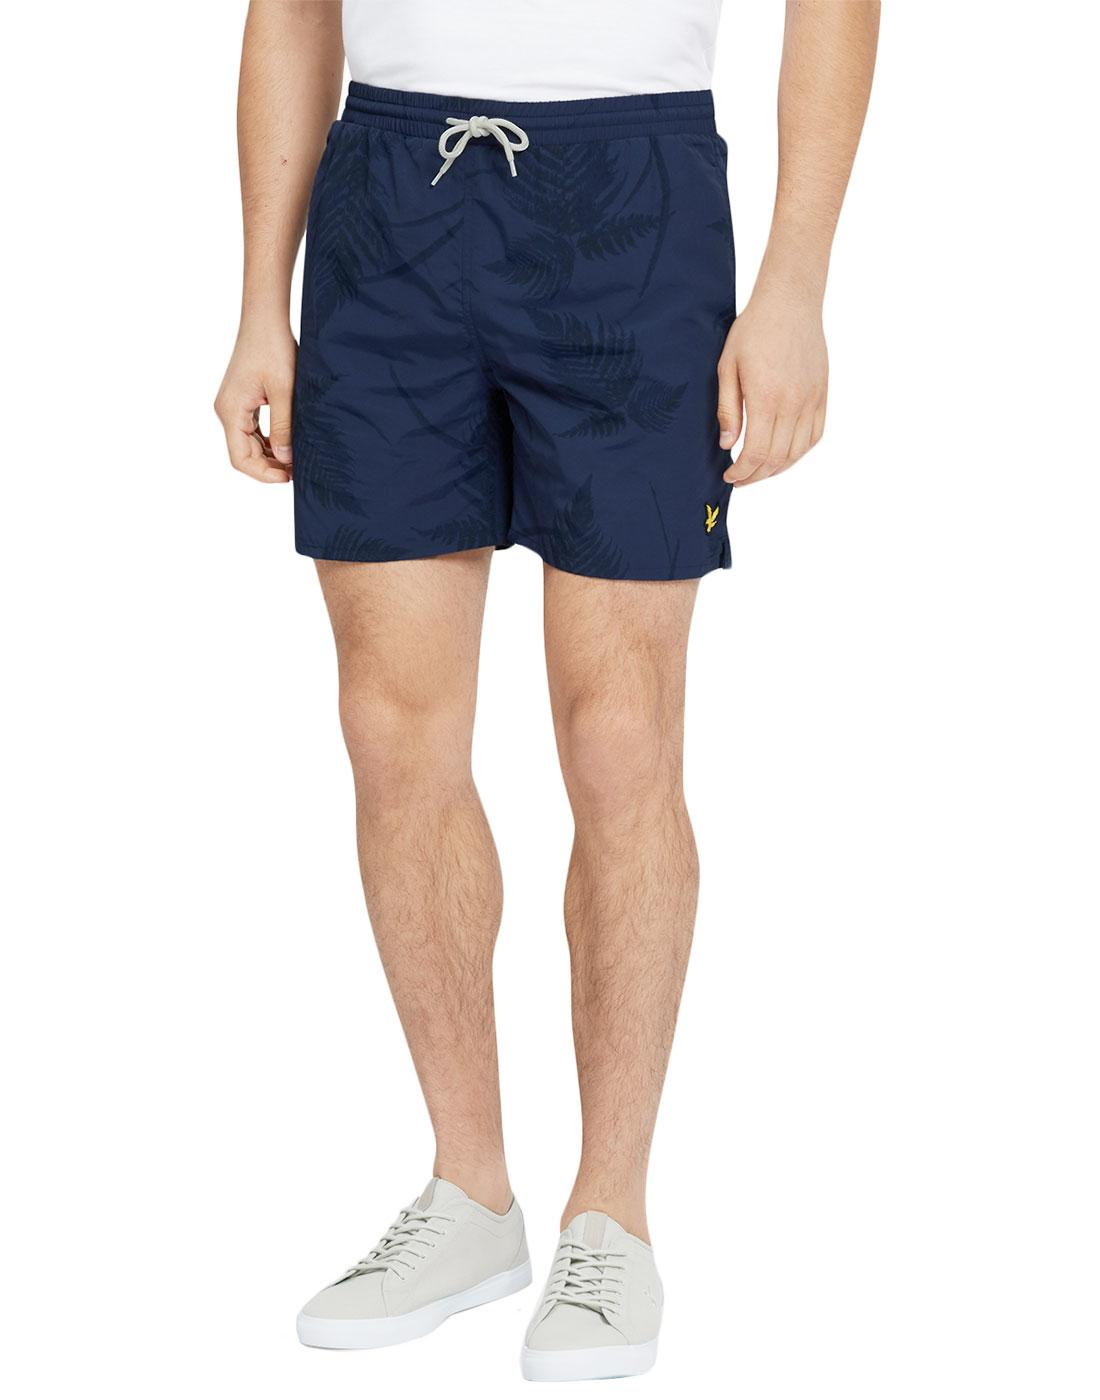 LYLE & SCOTT Mens Retro 70s Fern Print Swim Shorts